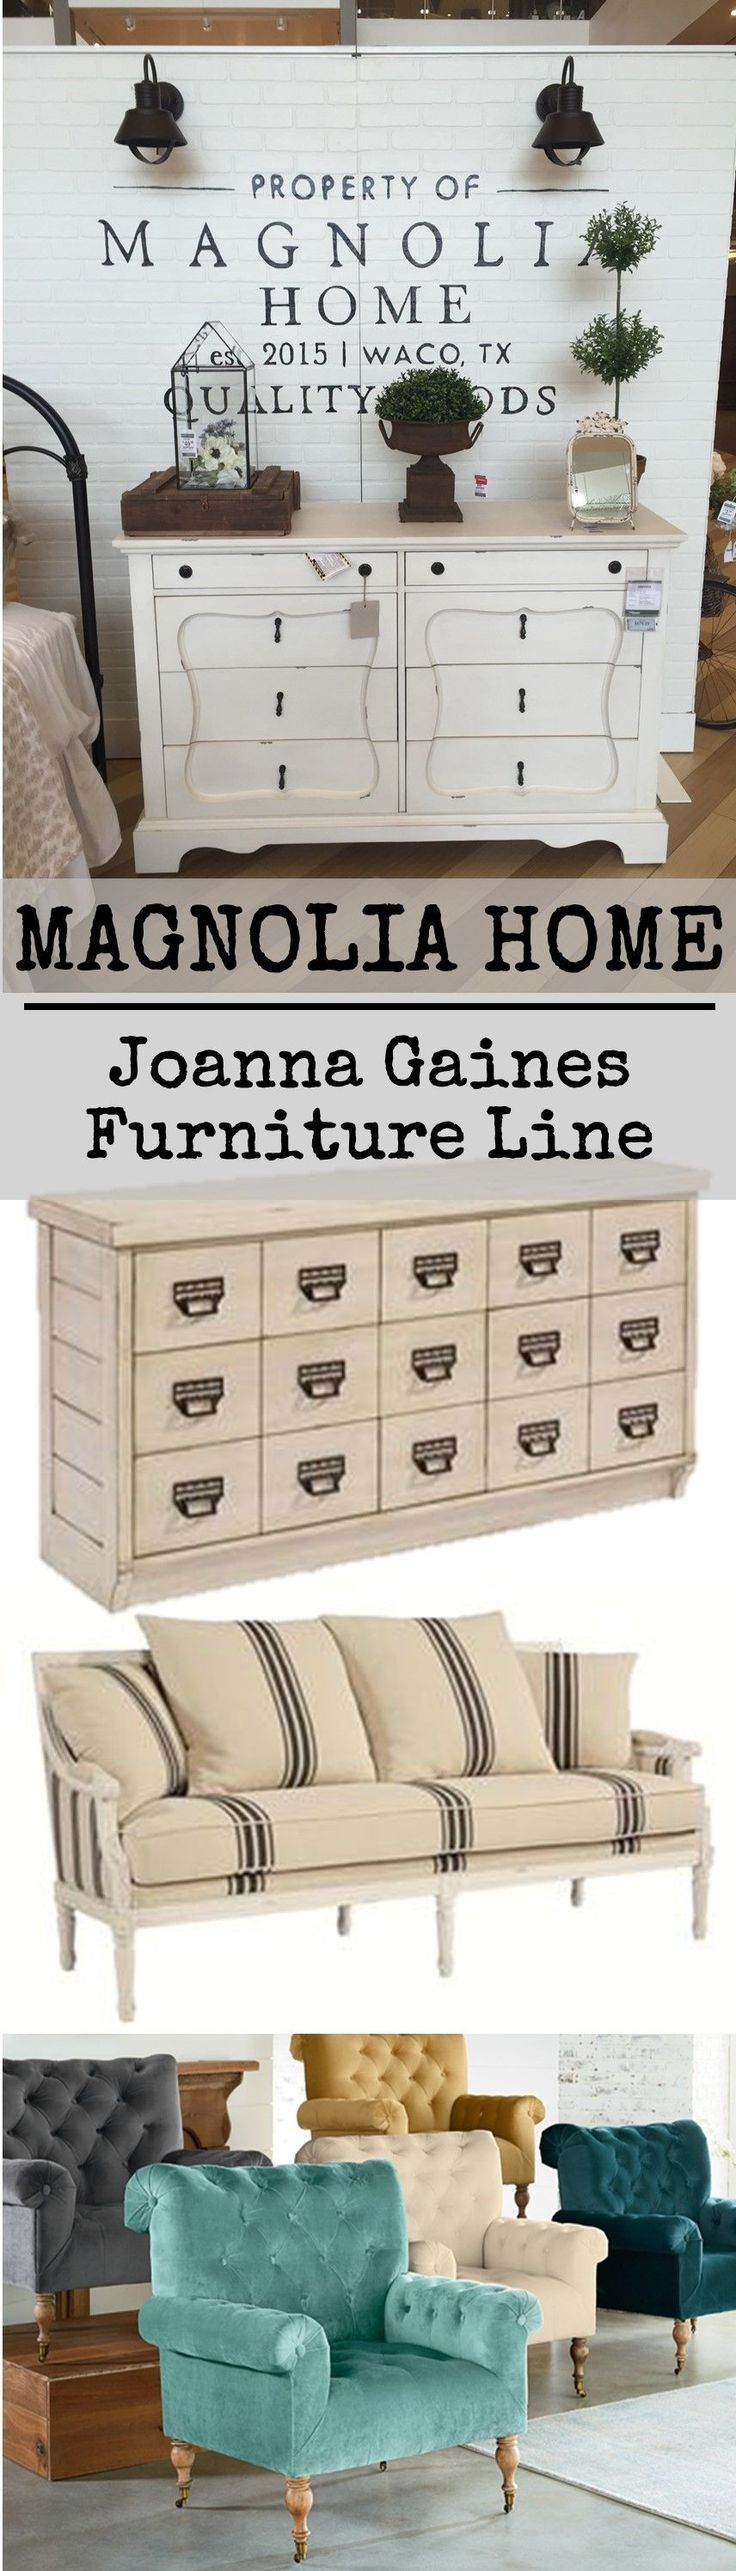 On my recent shopping trip I checked out Joanna Gaines new furniture line Magnolia Home.  It did not disappoint.  See all the photos, shopping links, real life pictures, etc including reviews on her paint line and my favorite Magnolia Home Decor products.  Lots of farmhouse goodness in 1 spot!